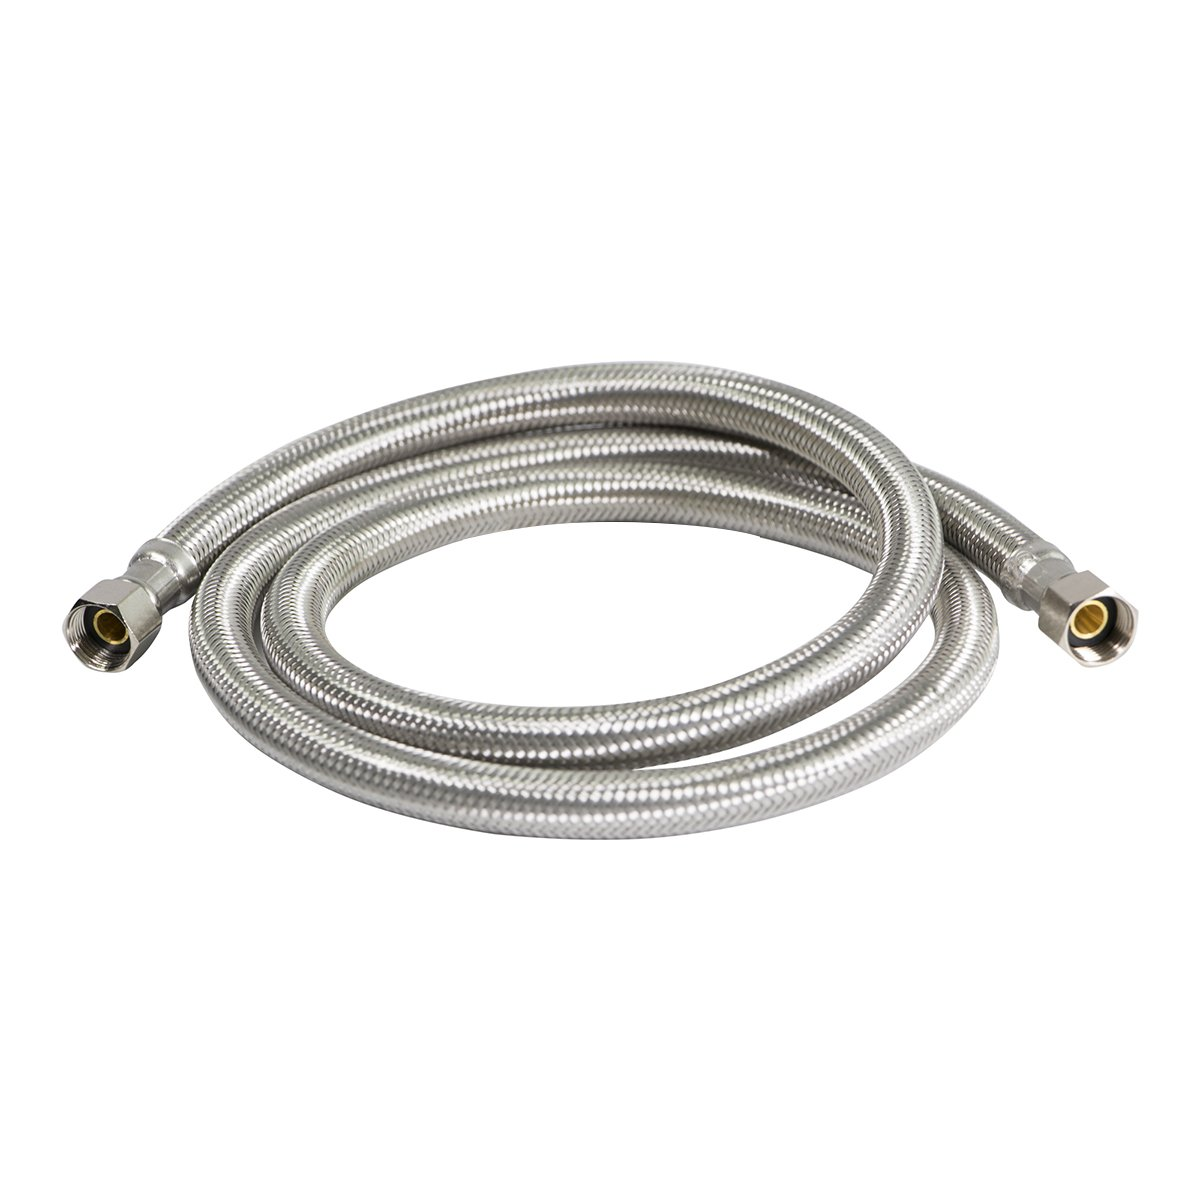 """Everflow Supplies 2662-NL Lead Free Stainless Steel Braided Ice Maker Supply Line with Two 1/4"""" Fittings on Both Ends, 24"""""""